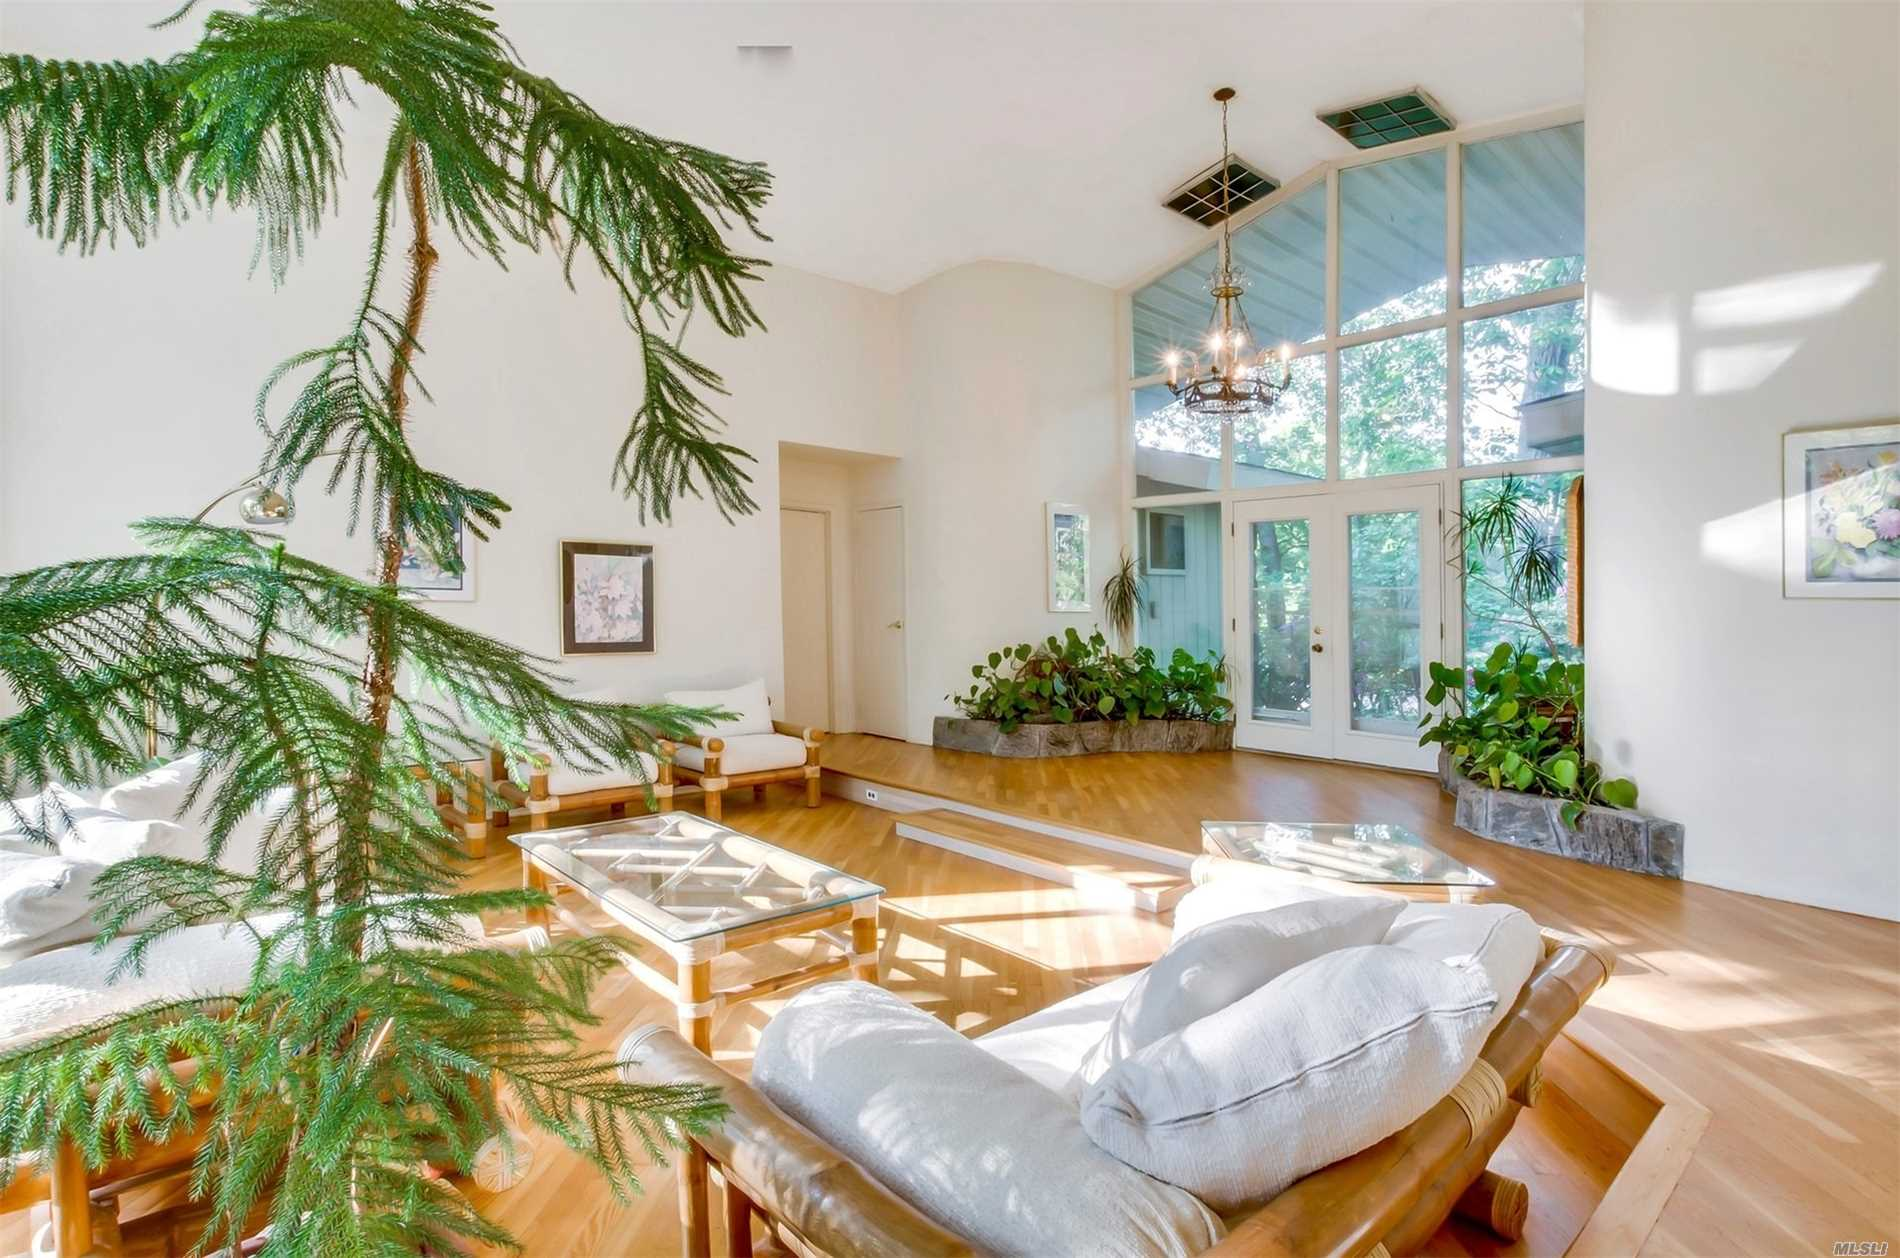 Natural Light Is Amazing. Expansive Ranch Nestled Into A Private Belle Terre Parcel With Mature Trees And Most Peaceful Setting But Also Within A Neighborhood. Oversized Rooms, Floor To Ceiling Windows, Ample Closets And Open Flow. Living Like You Are A Part Of Nature With Bright And Airy Sunroom. Updated Gas Heating System, Windows And New Roof. All Belle Terre Amenities.